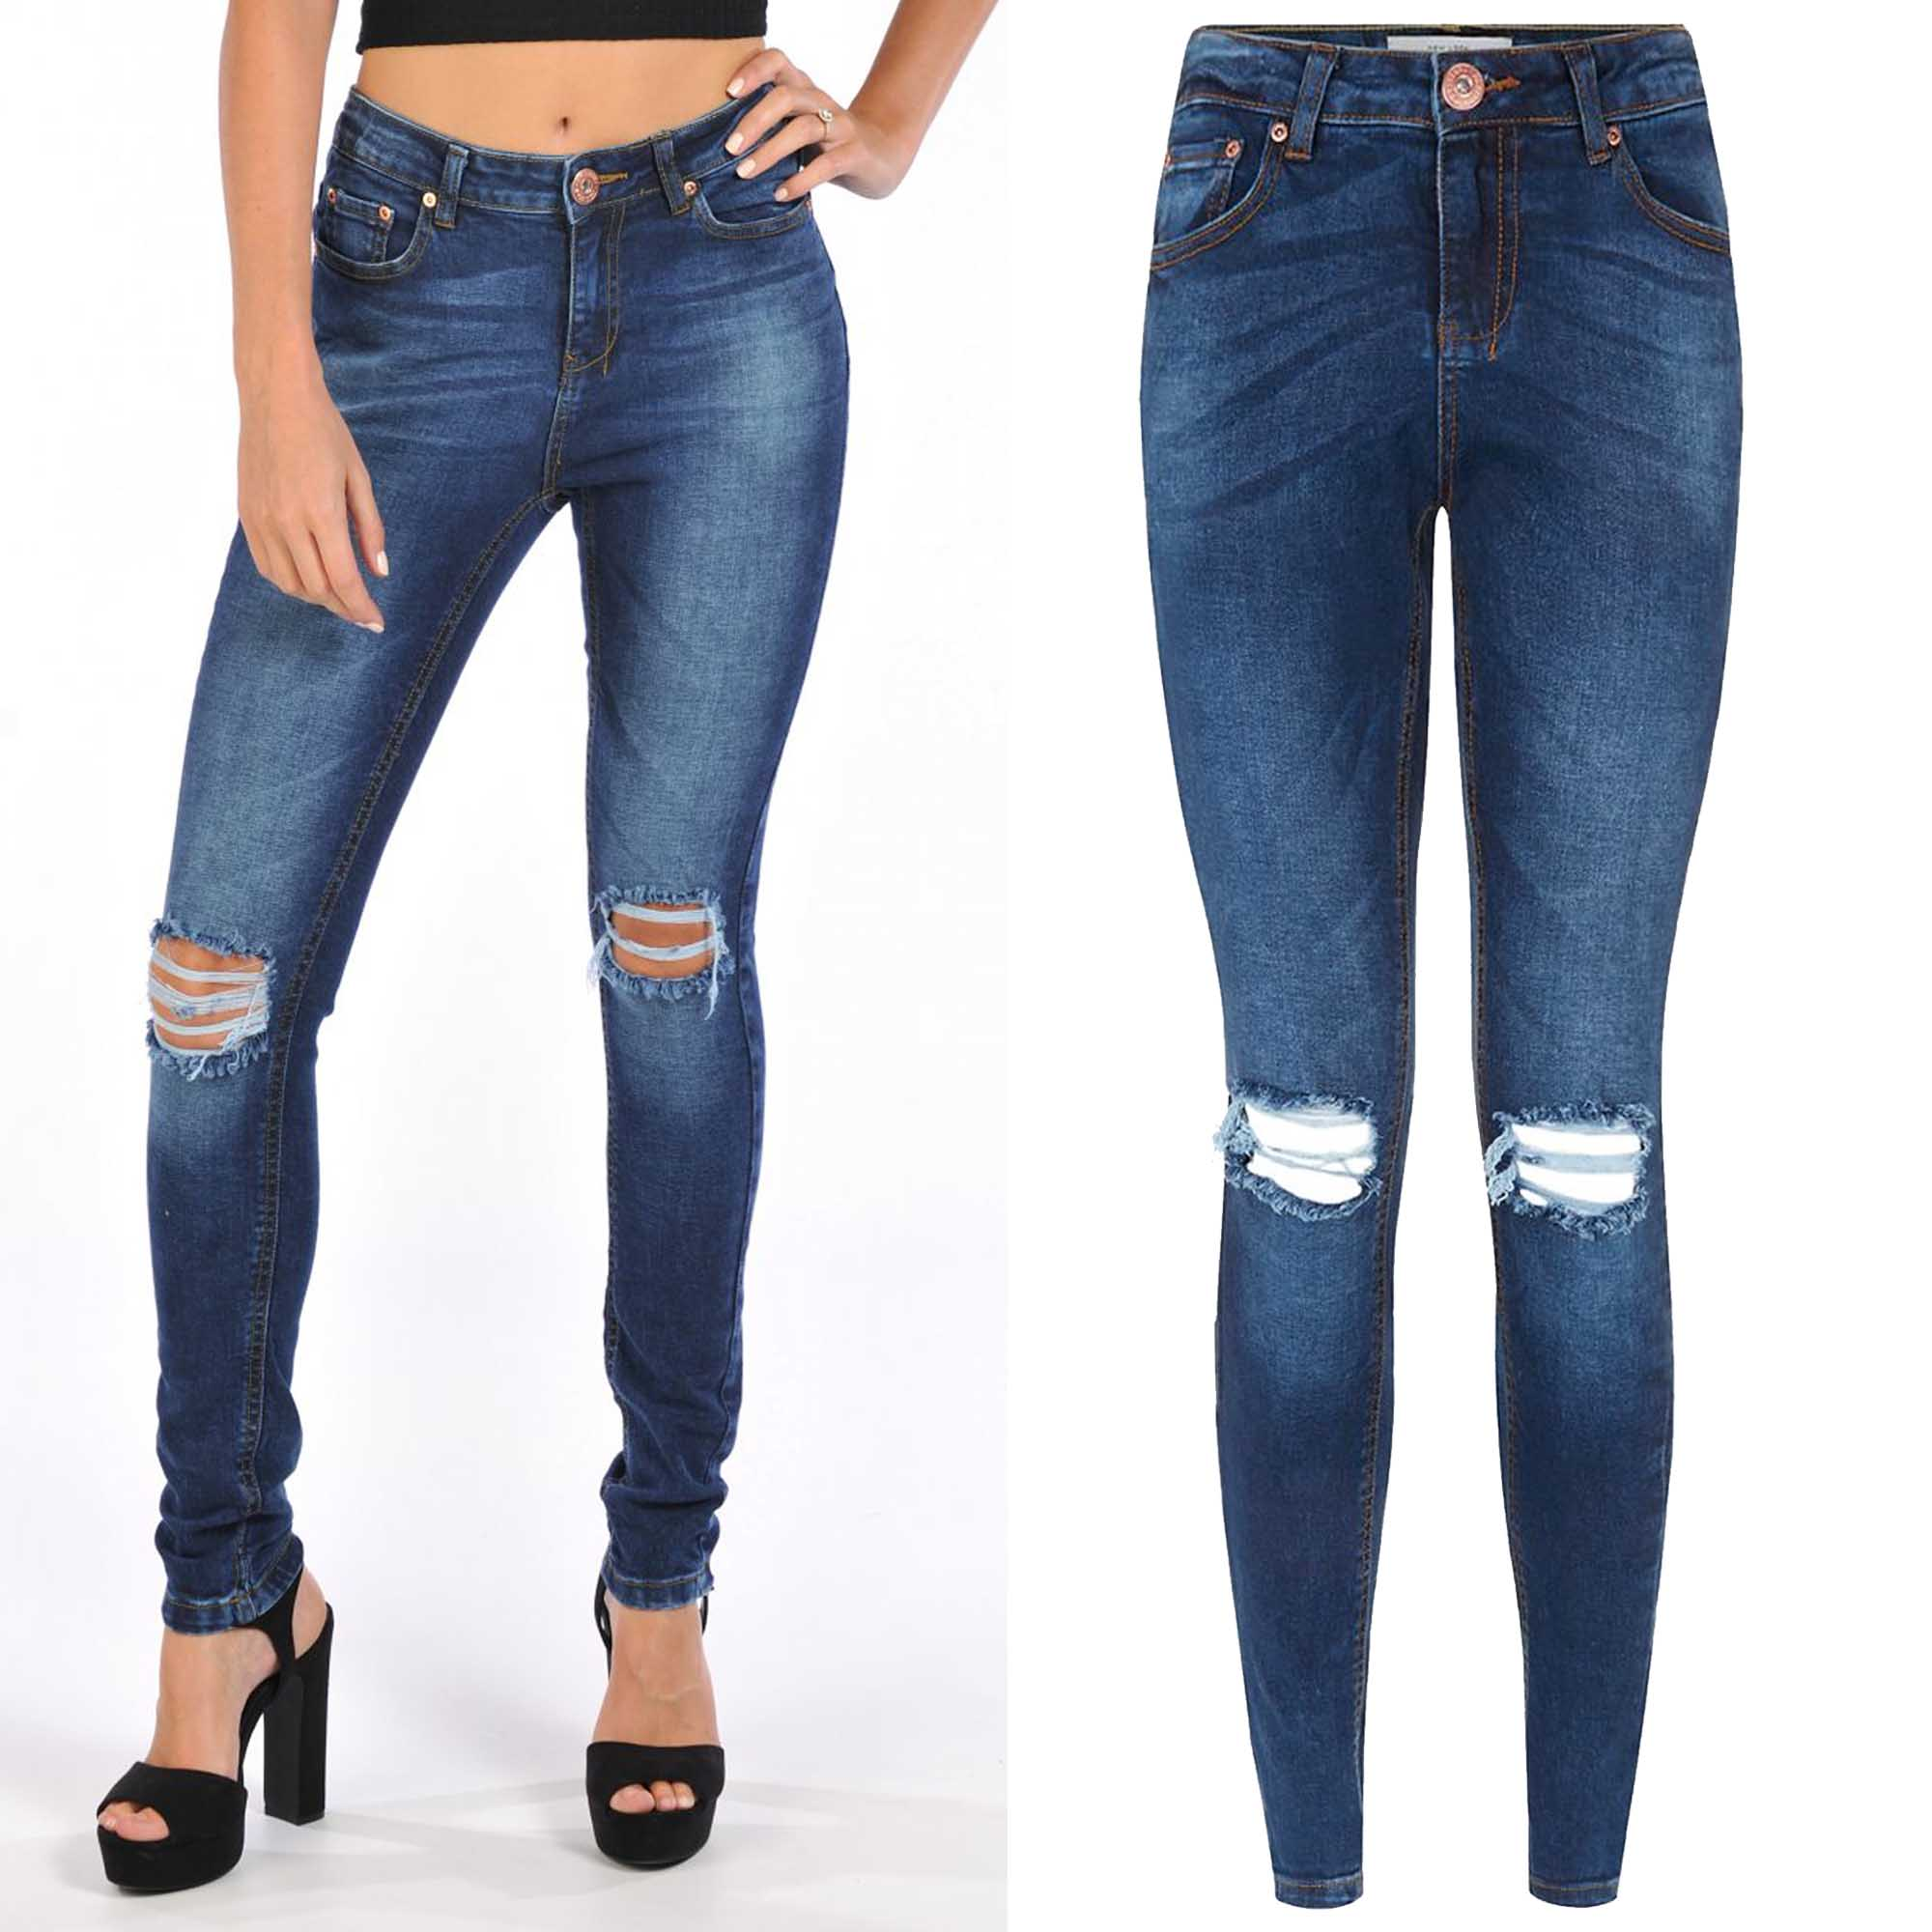 NEW LADIES RIPPED SKINNY JEANS WOMEN DISTRESSED BLUE DENIM STRETCH FIT RIP PANTS | eBay